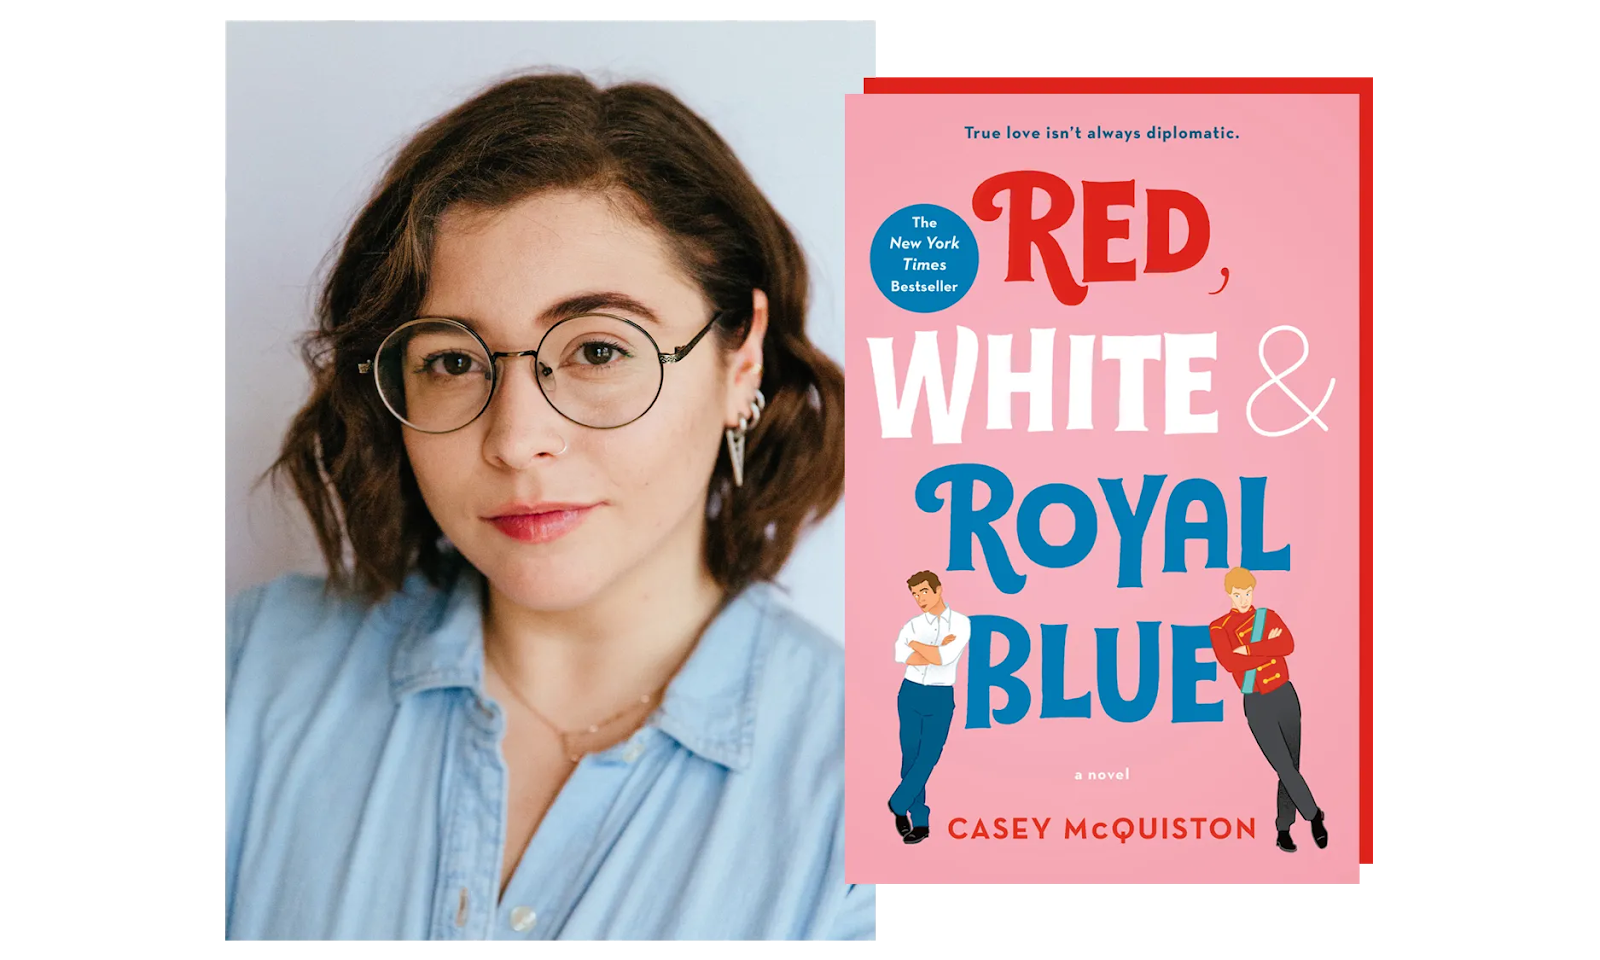 Casey McQuiston and the cover of her novel Red, White & Royal Blue